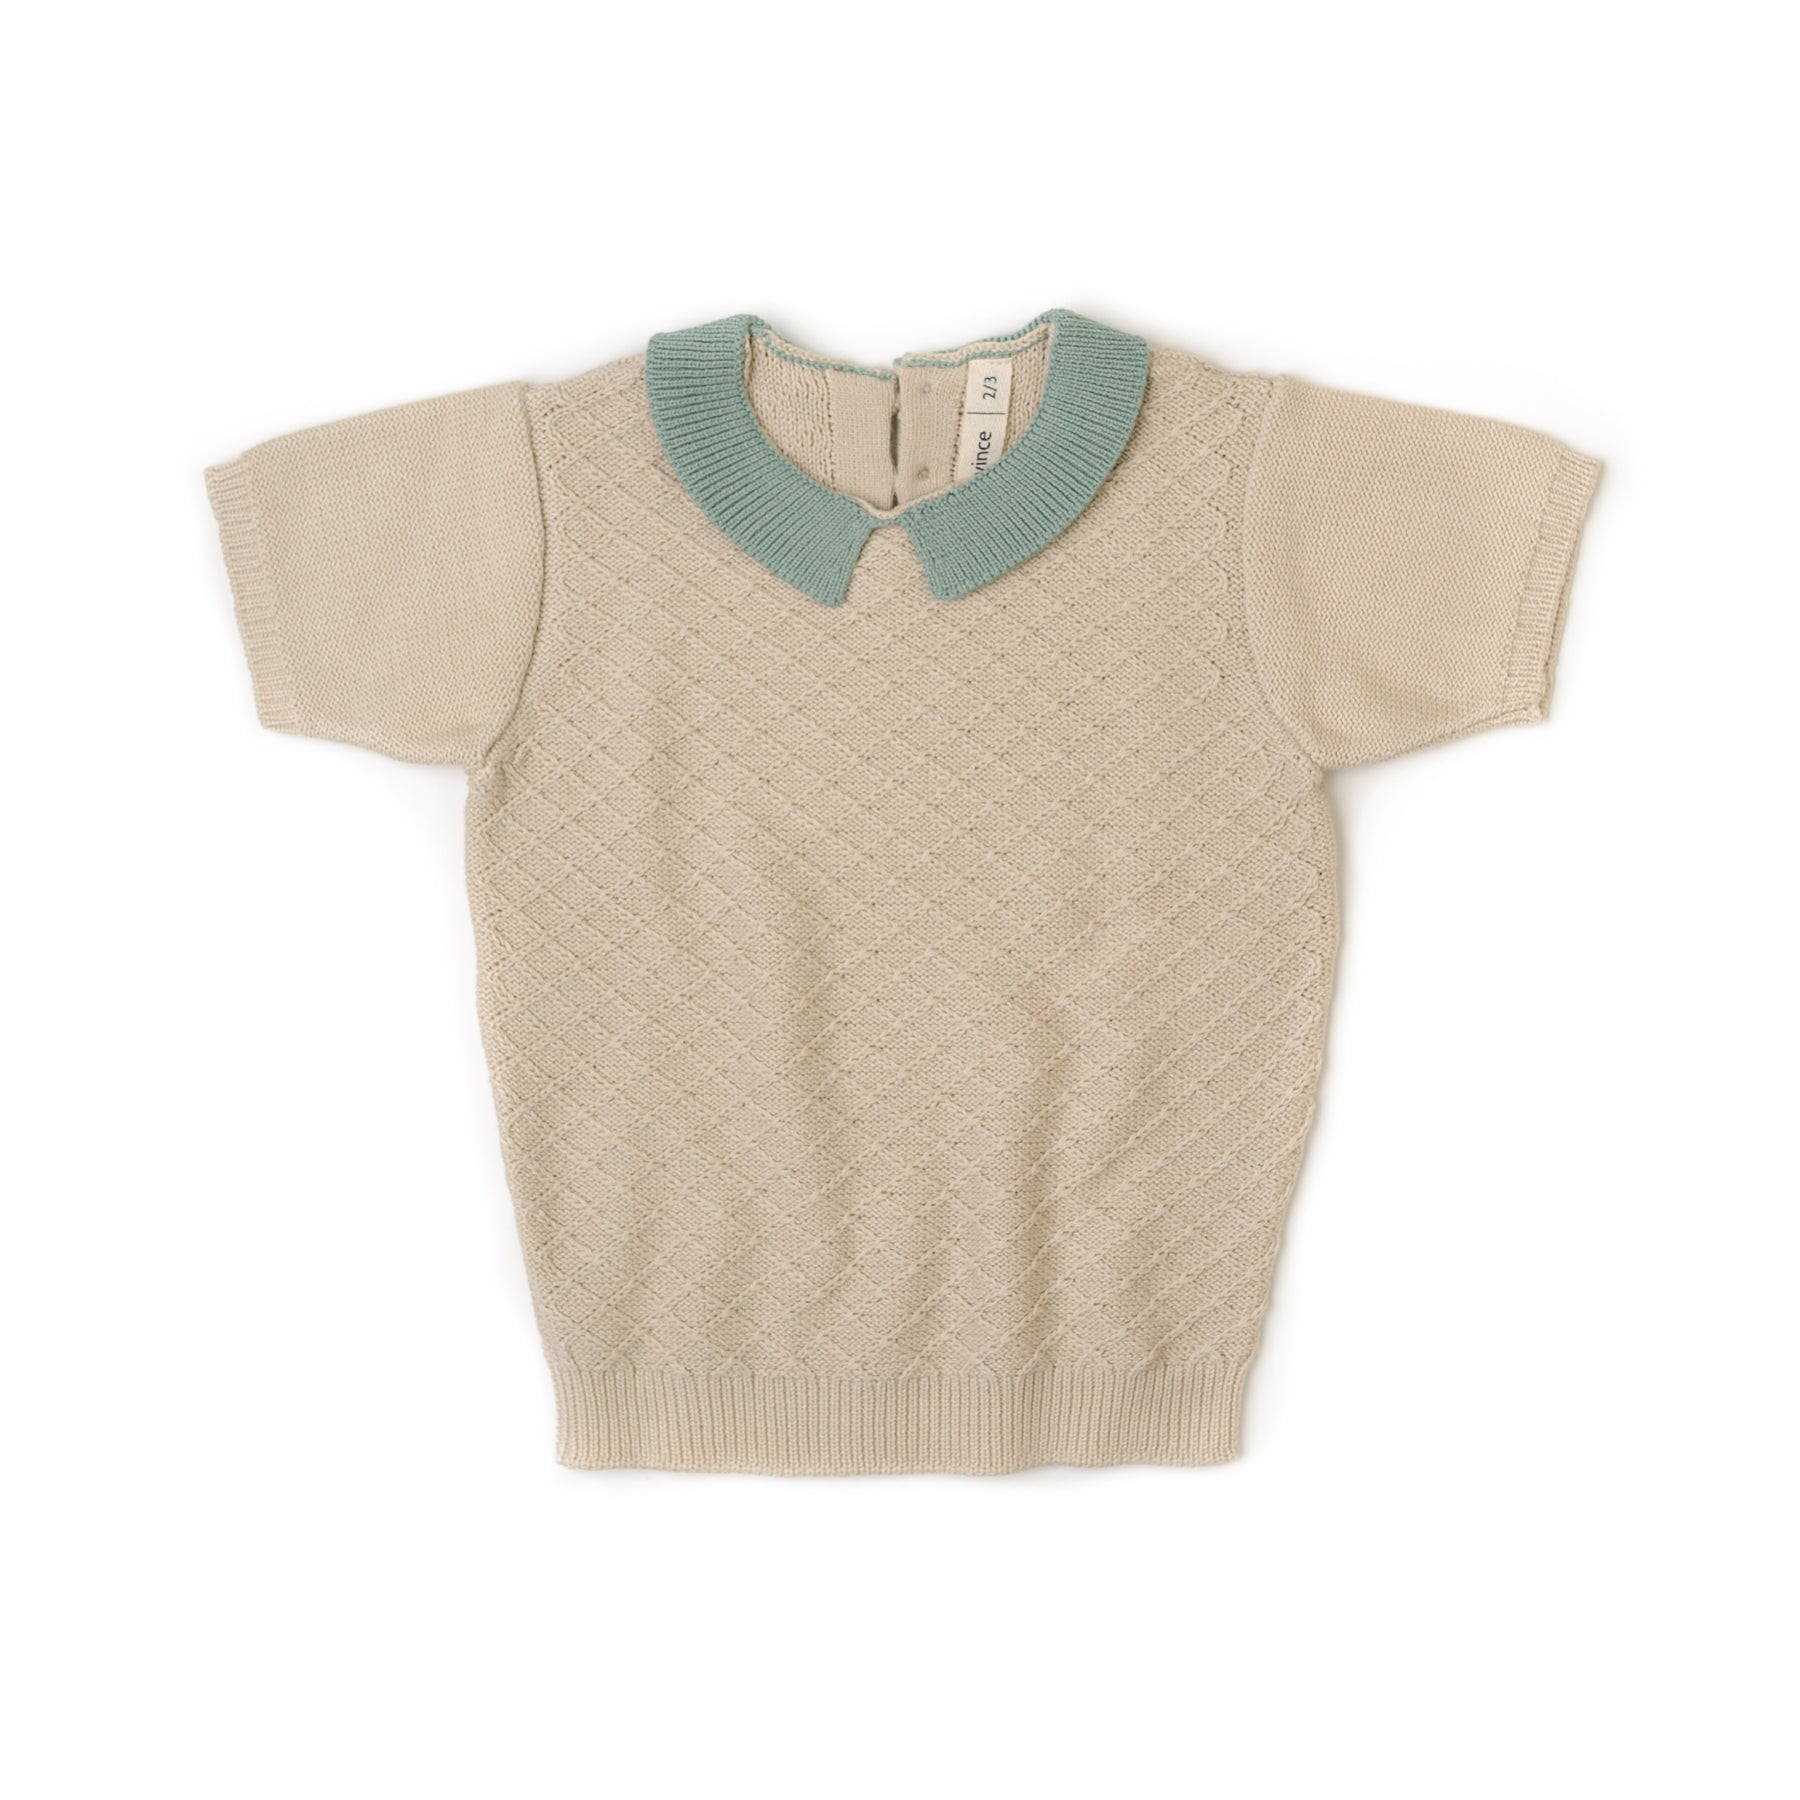 Fin and Vince - Knit Collar Top (Moss)